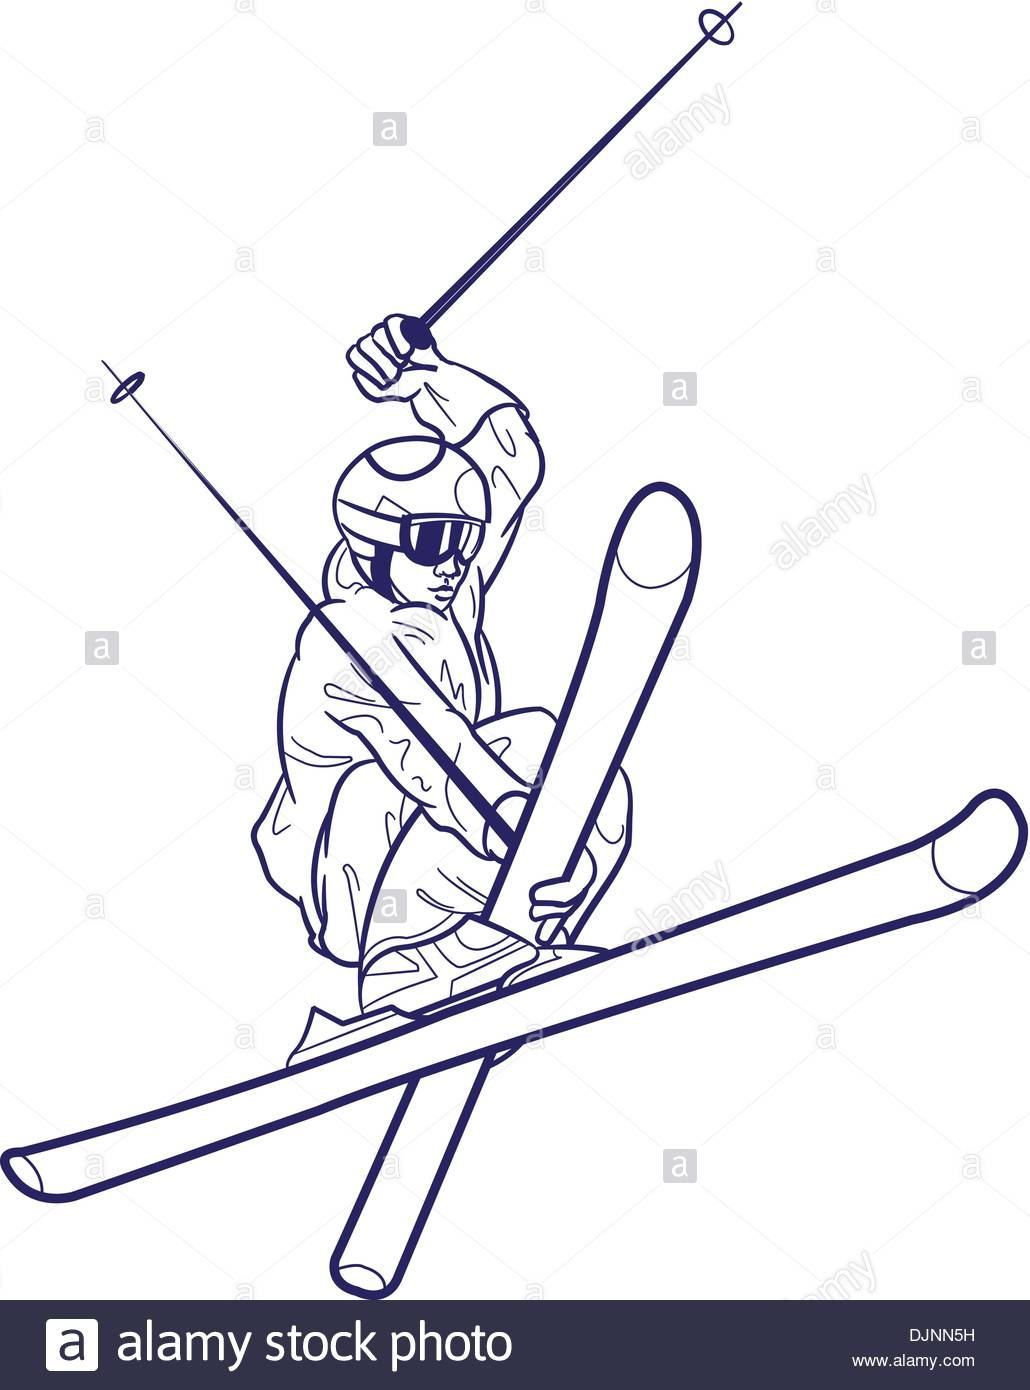 1030x1390 Line Drawing Of Person Skiing Stock Vector Art Amp Illustration